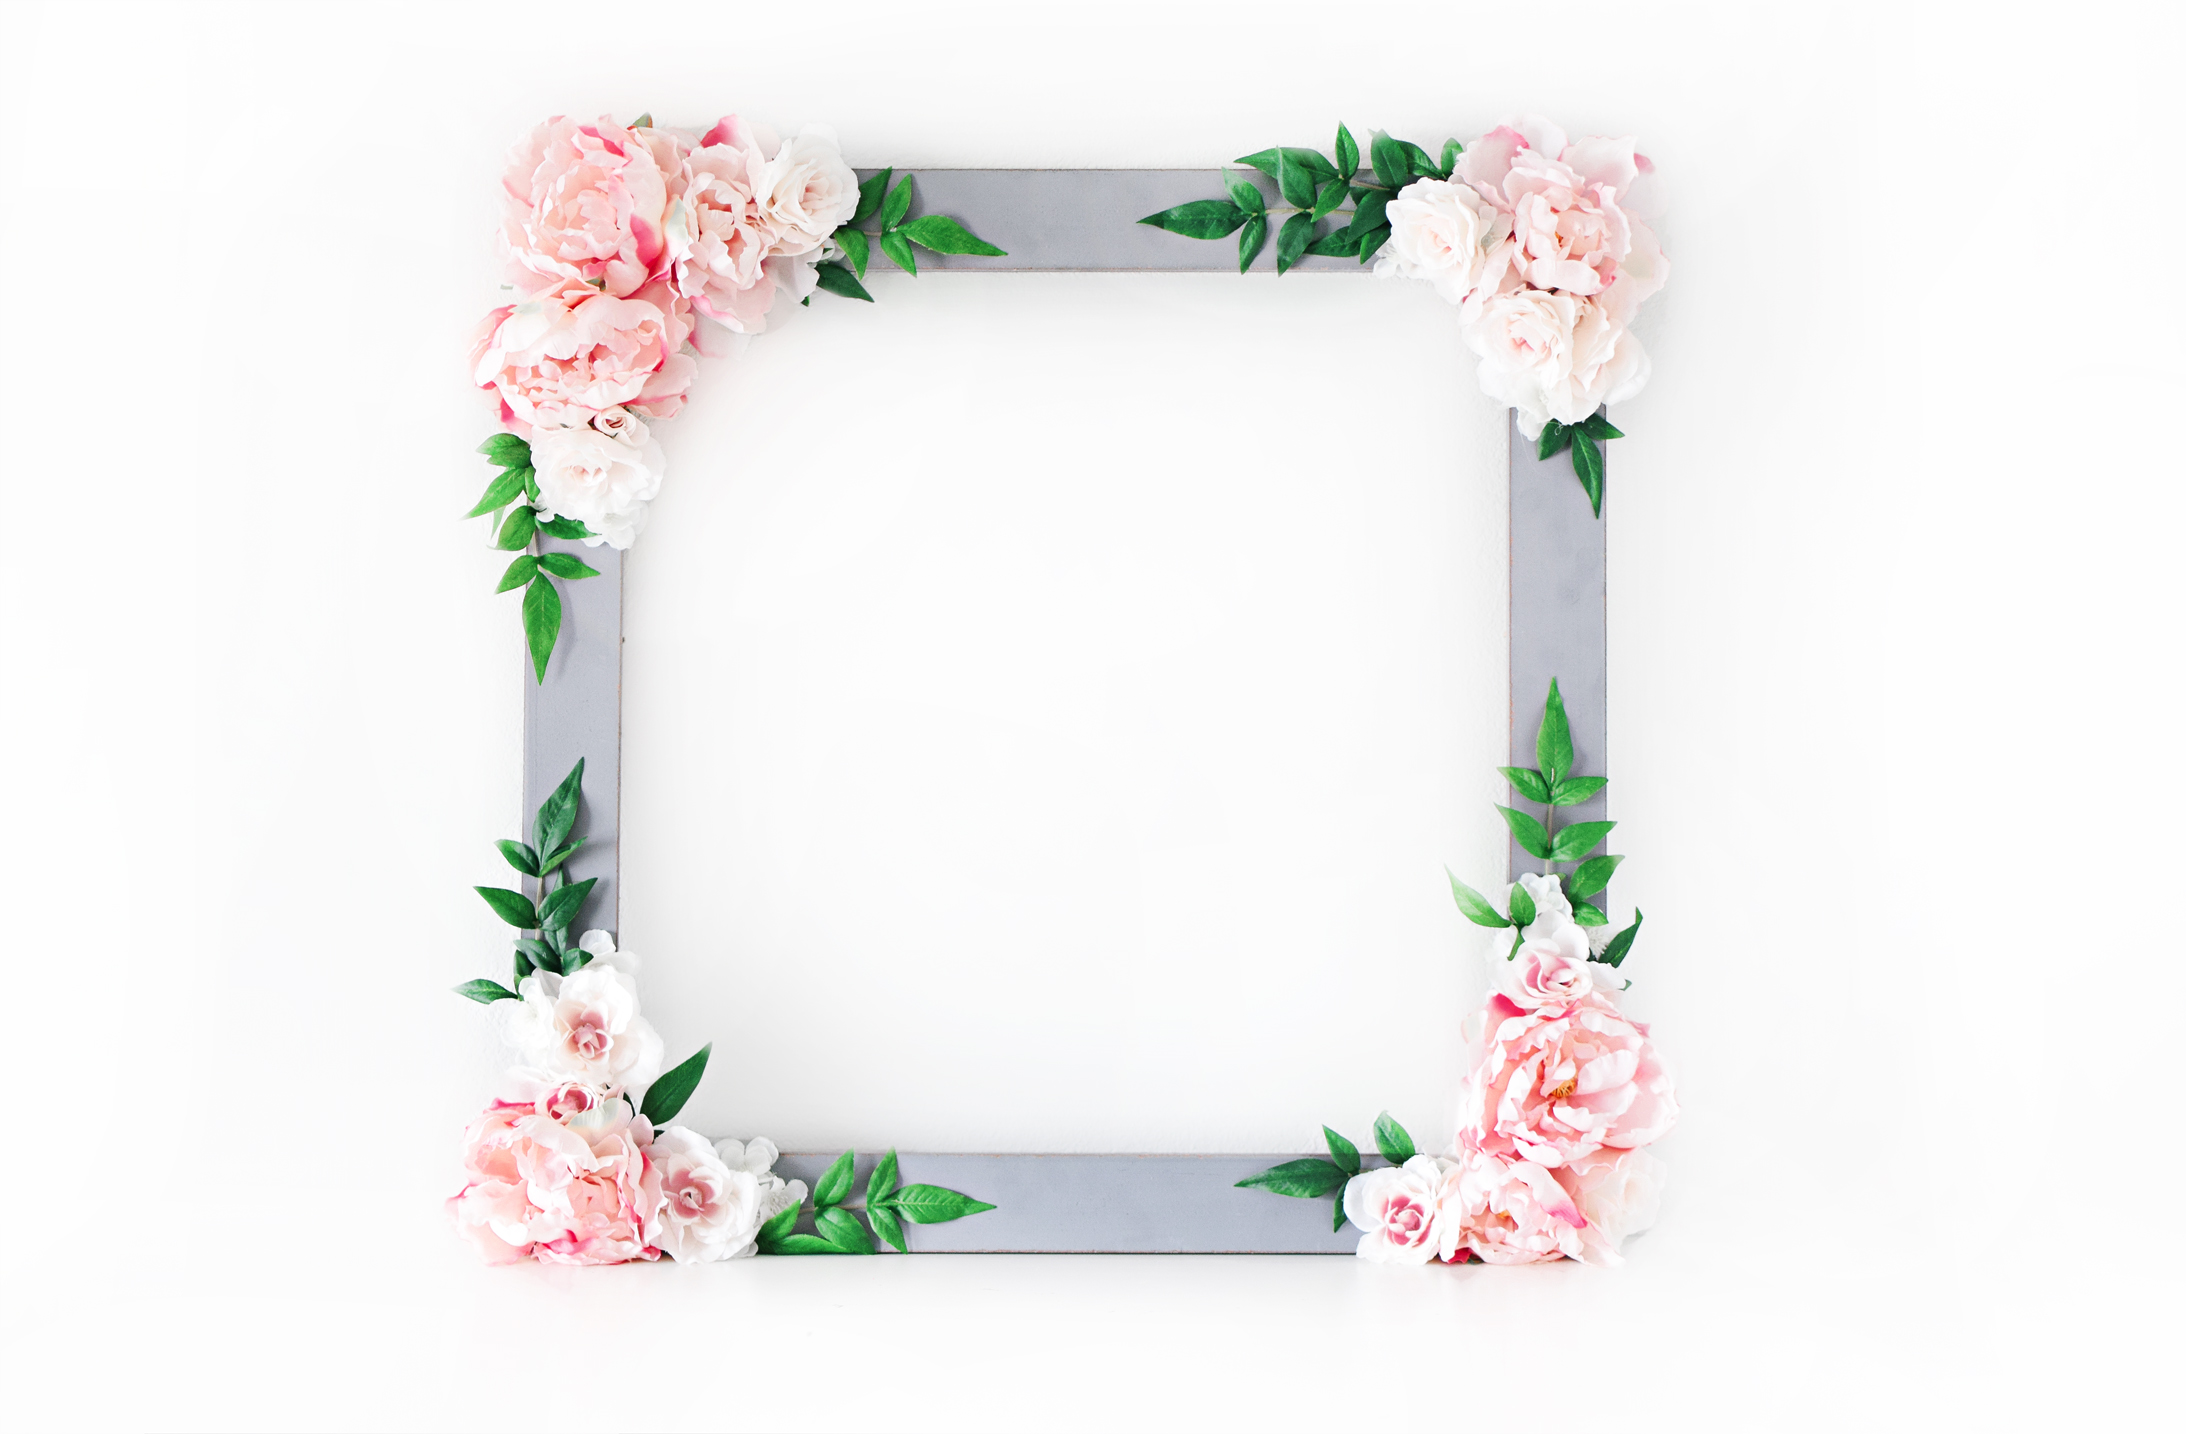 DIY Bridal Shower Floral Photo Booth Frame - Beacon Lane